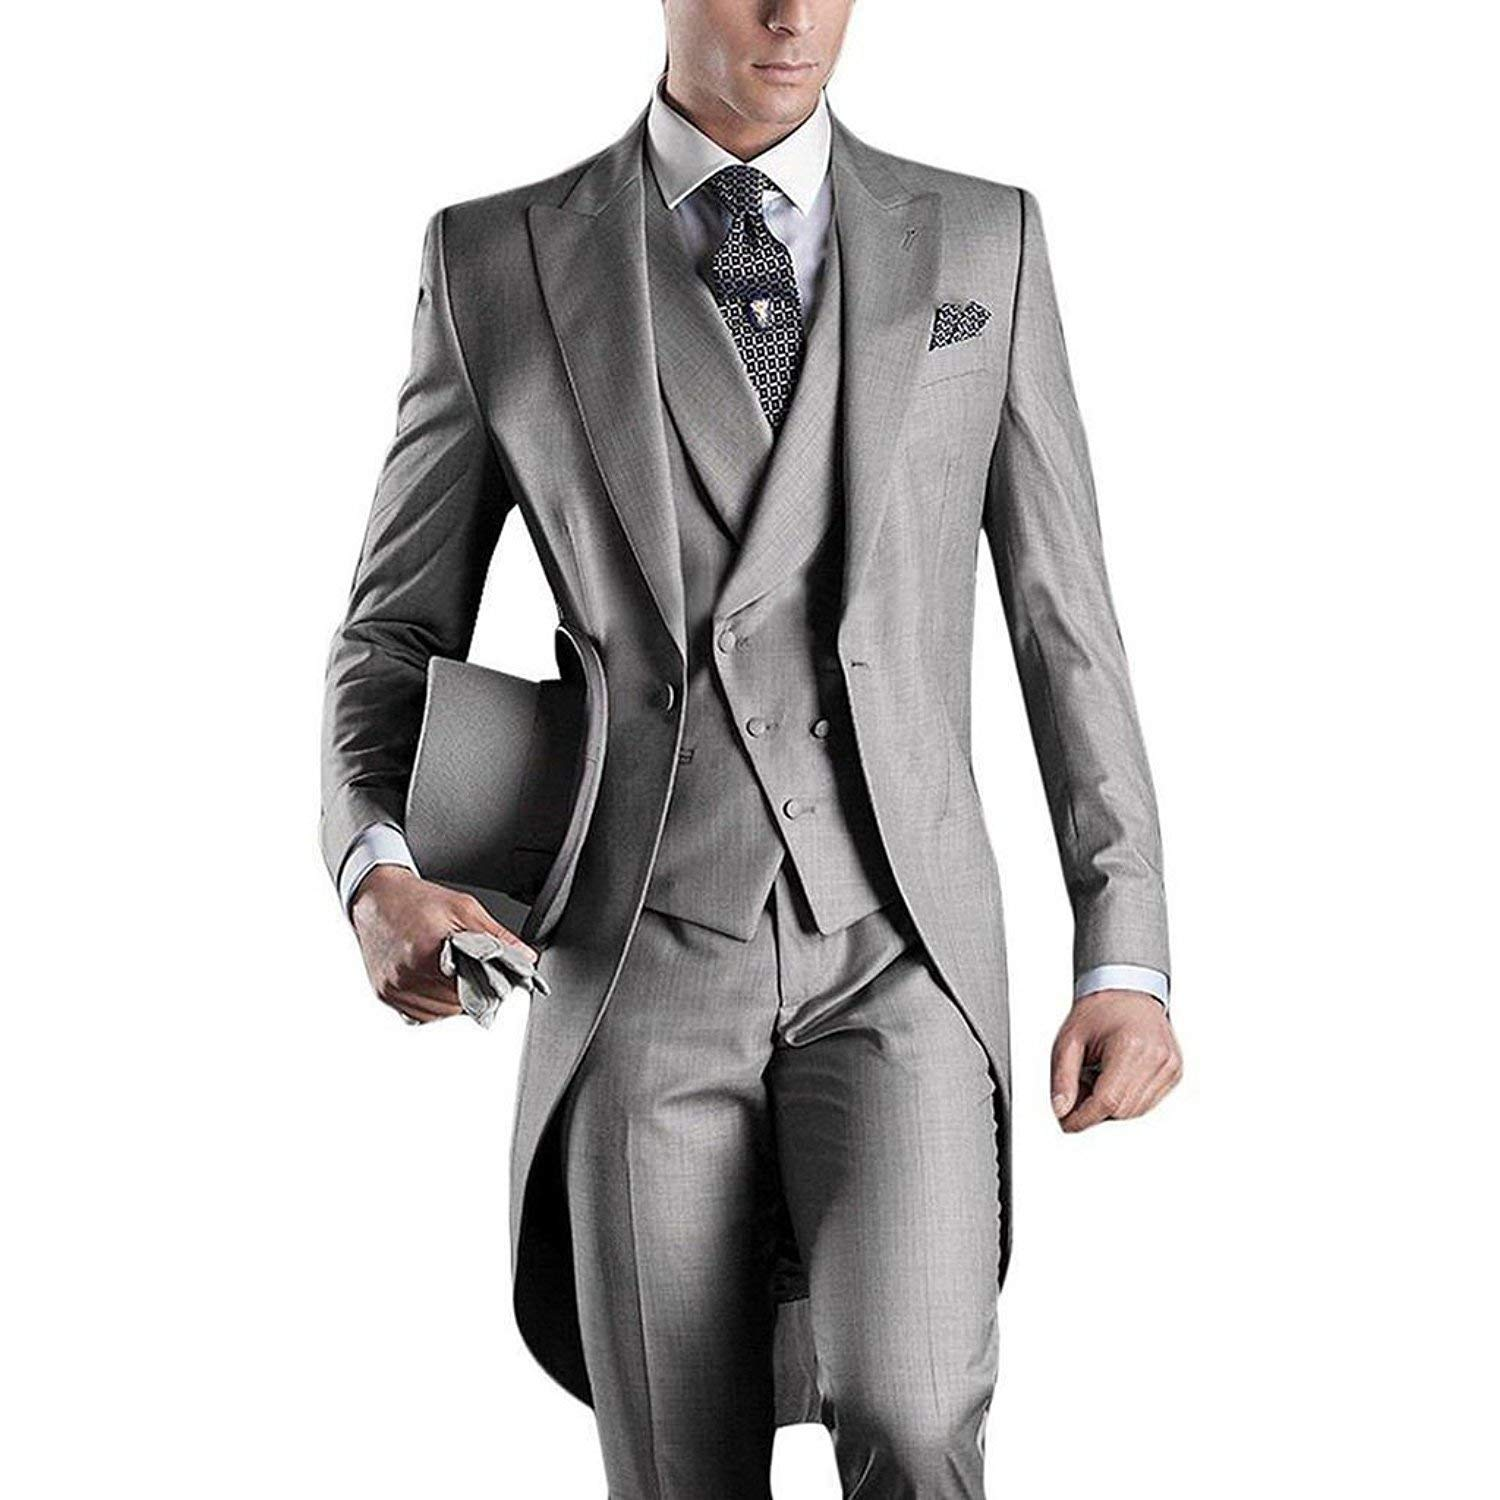 4414b7c0967 JYDress Mens Suit Premium Tail Tuxedo 3pc Tailcoat Suit in Gray Black Suit  Jacket